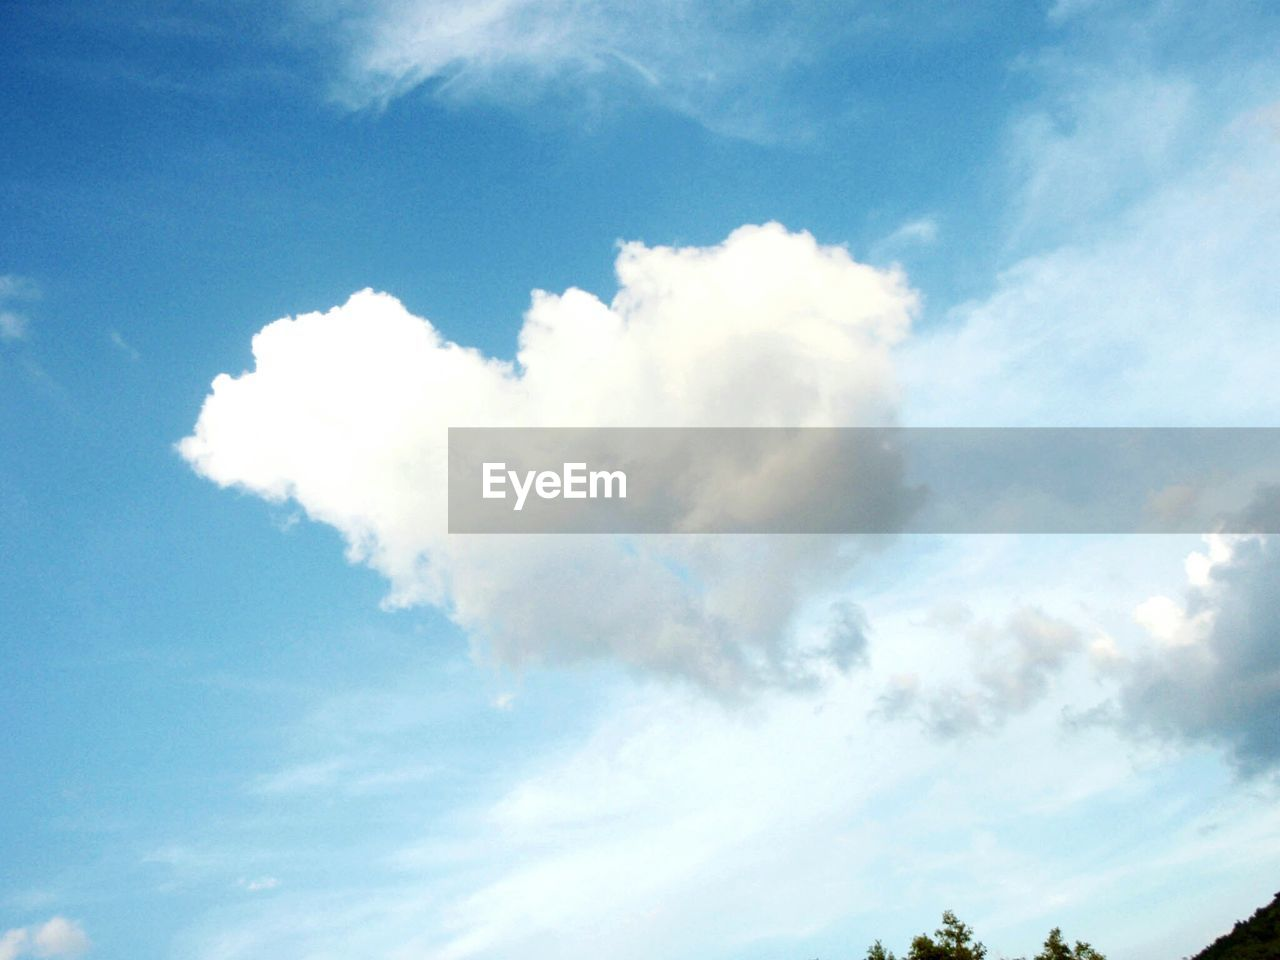 sky, beauty in nature, nature, cloud - sky, low angle view, scenics, sky only, tranquility, day, blue, tranquil scene, outdoors, no people, backgrounds, full frame